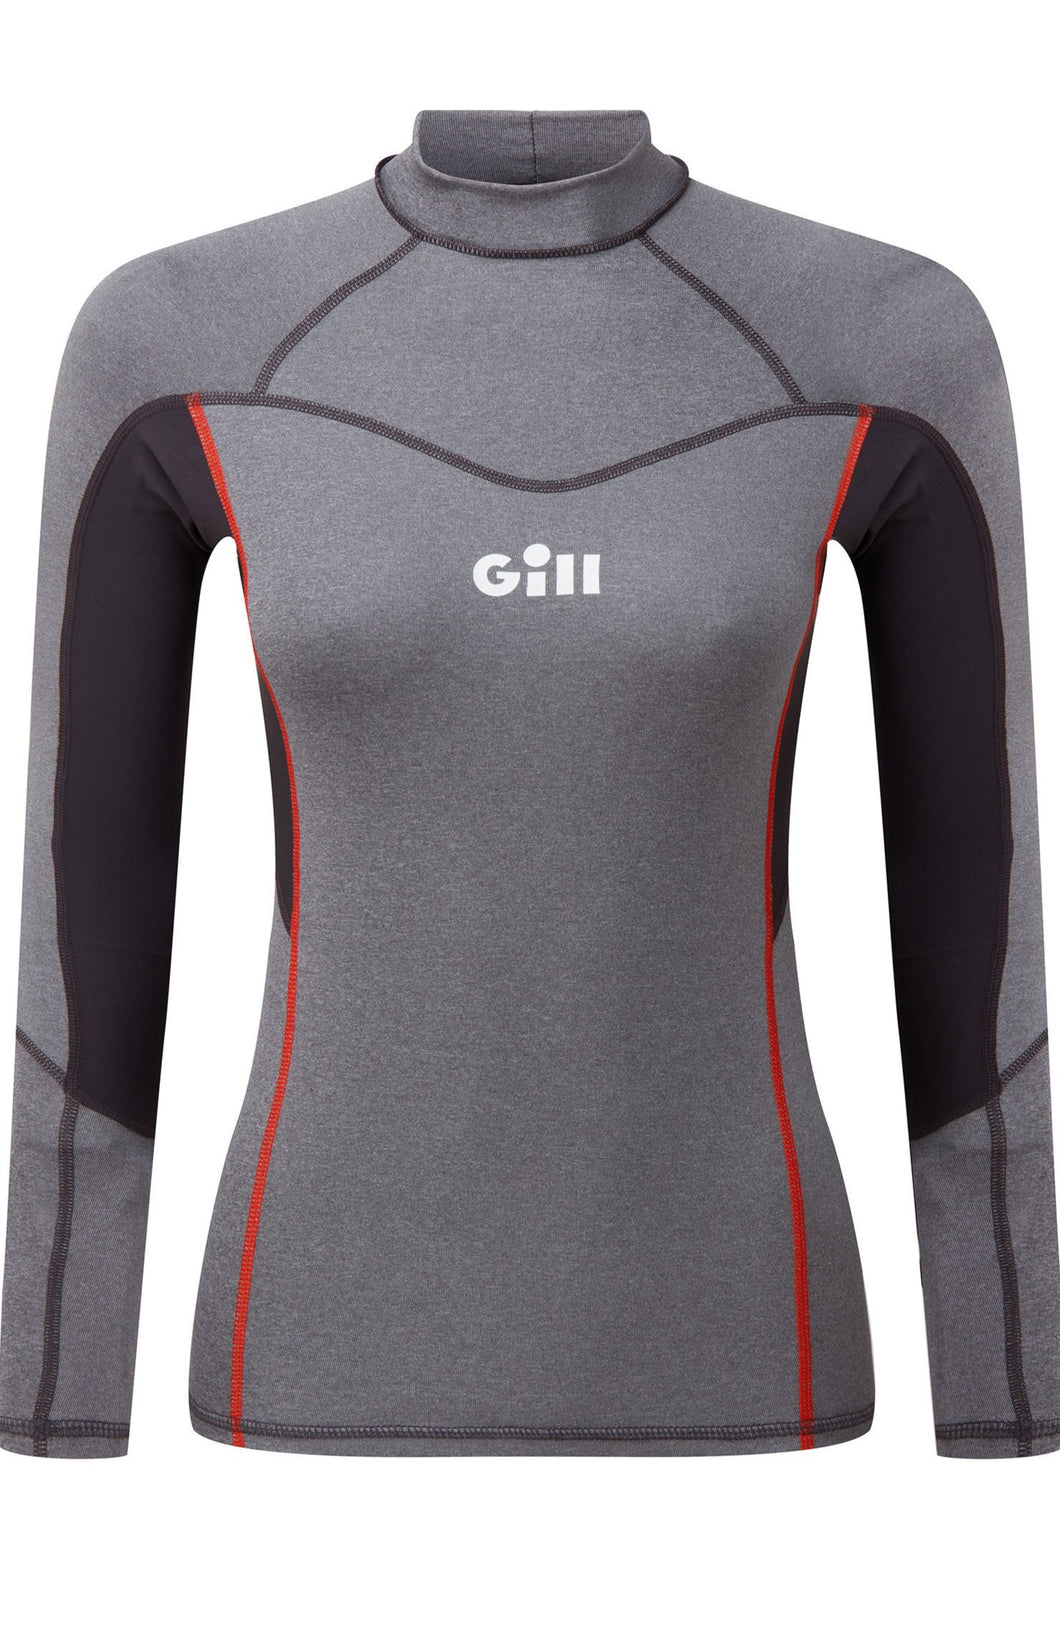 Gill Women's Pro Rash Vest Long Sleeve Grey Melange